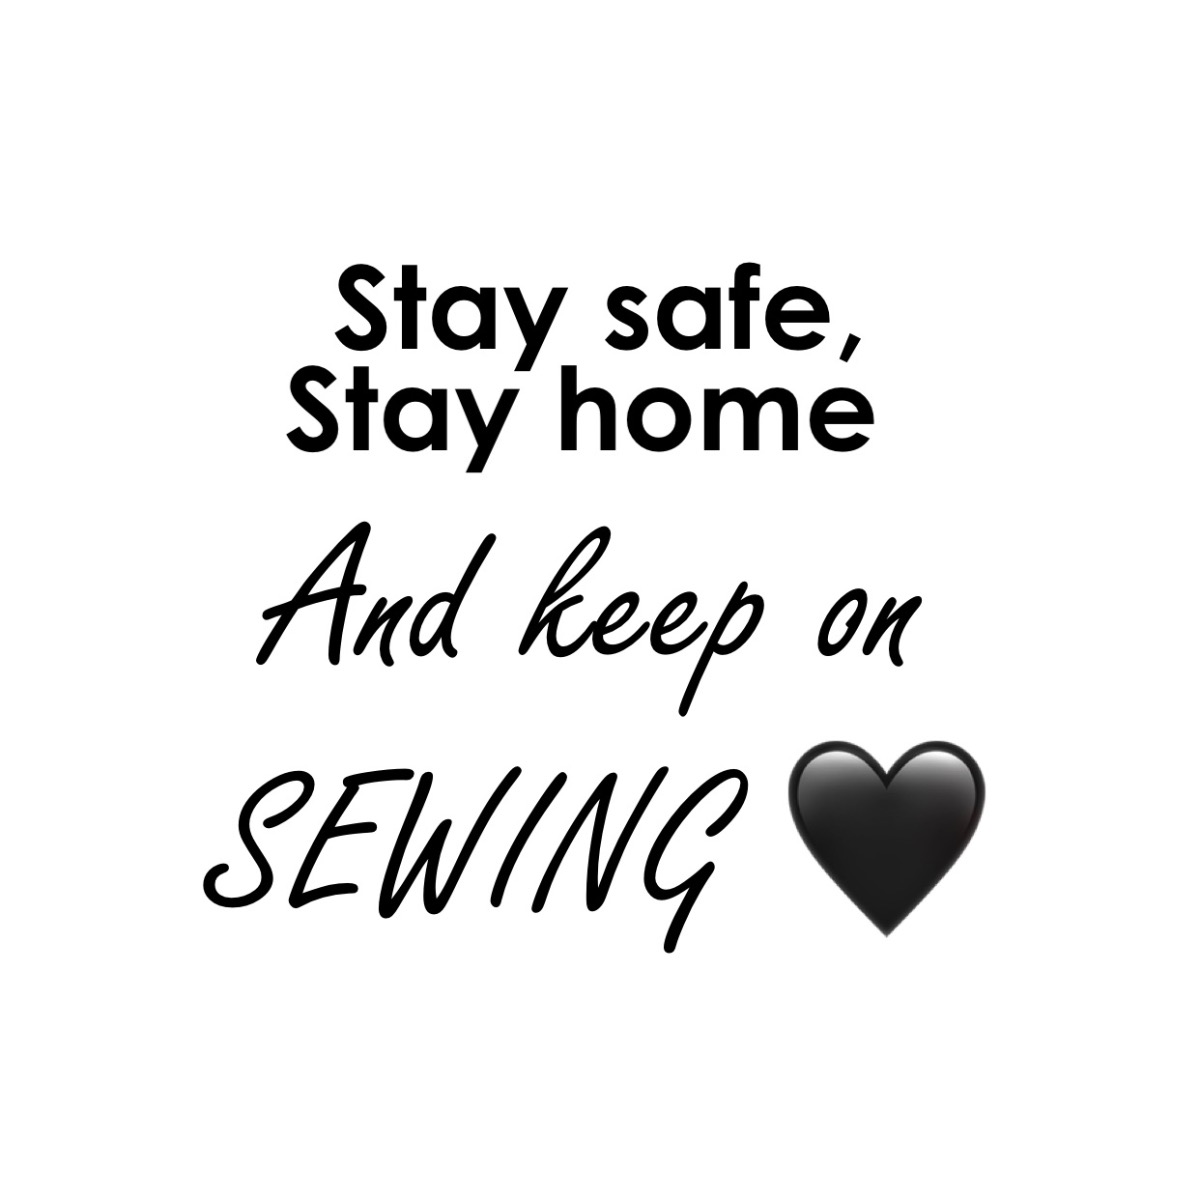 stay home stay safe and keep on sewing